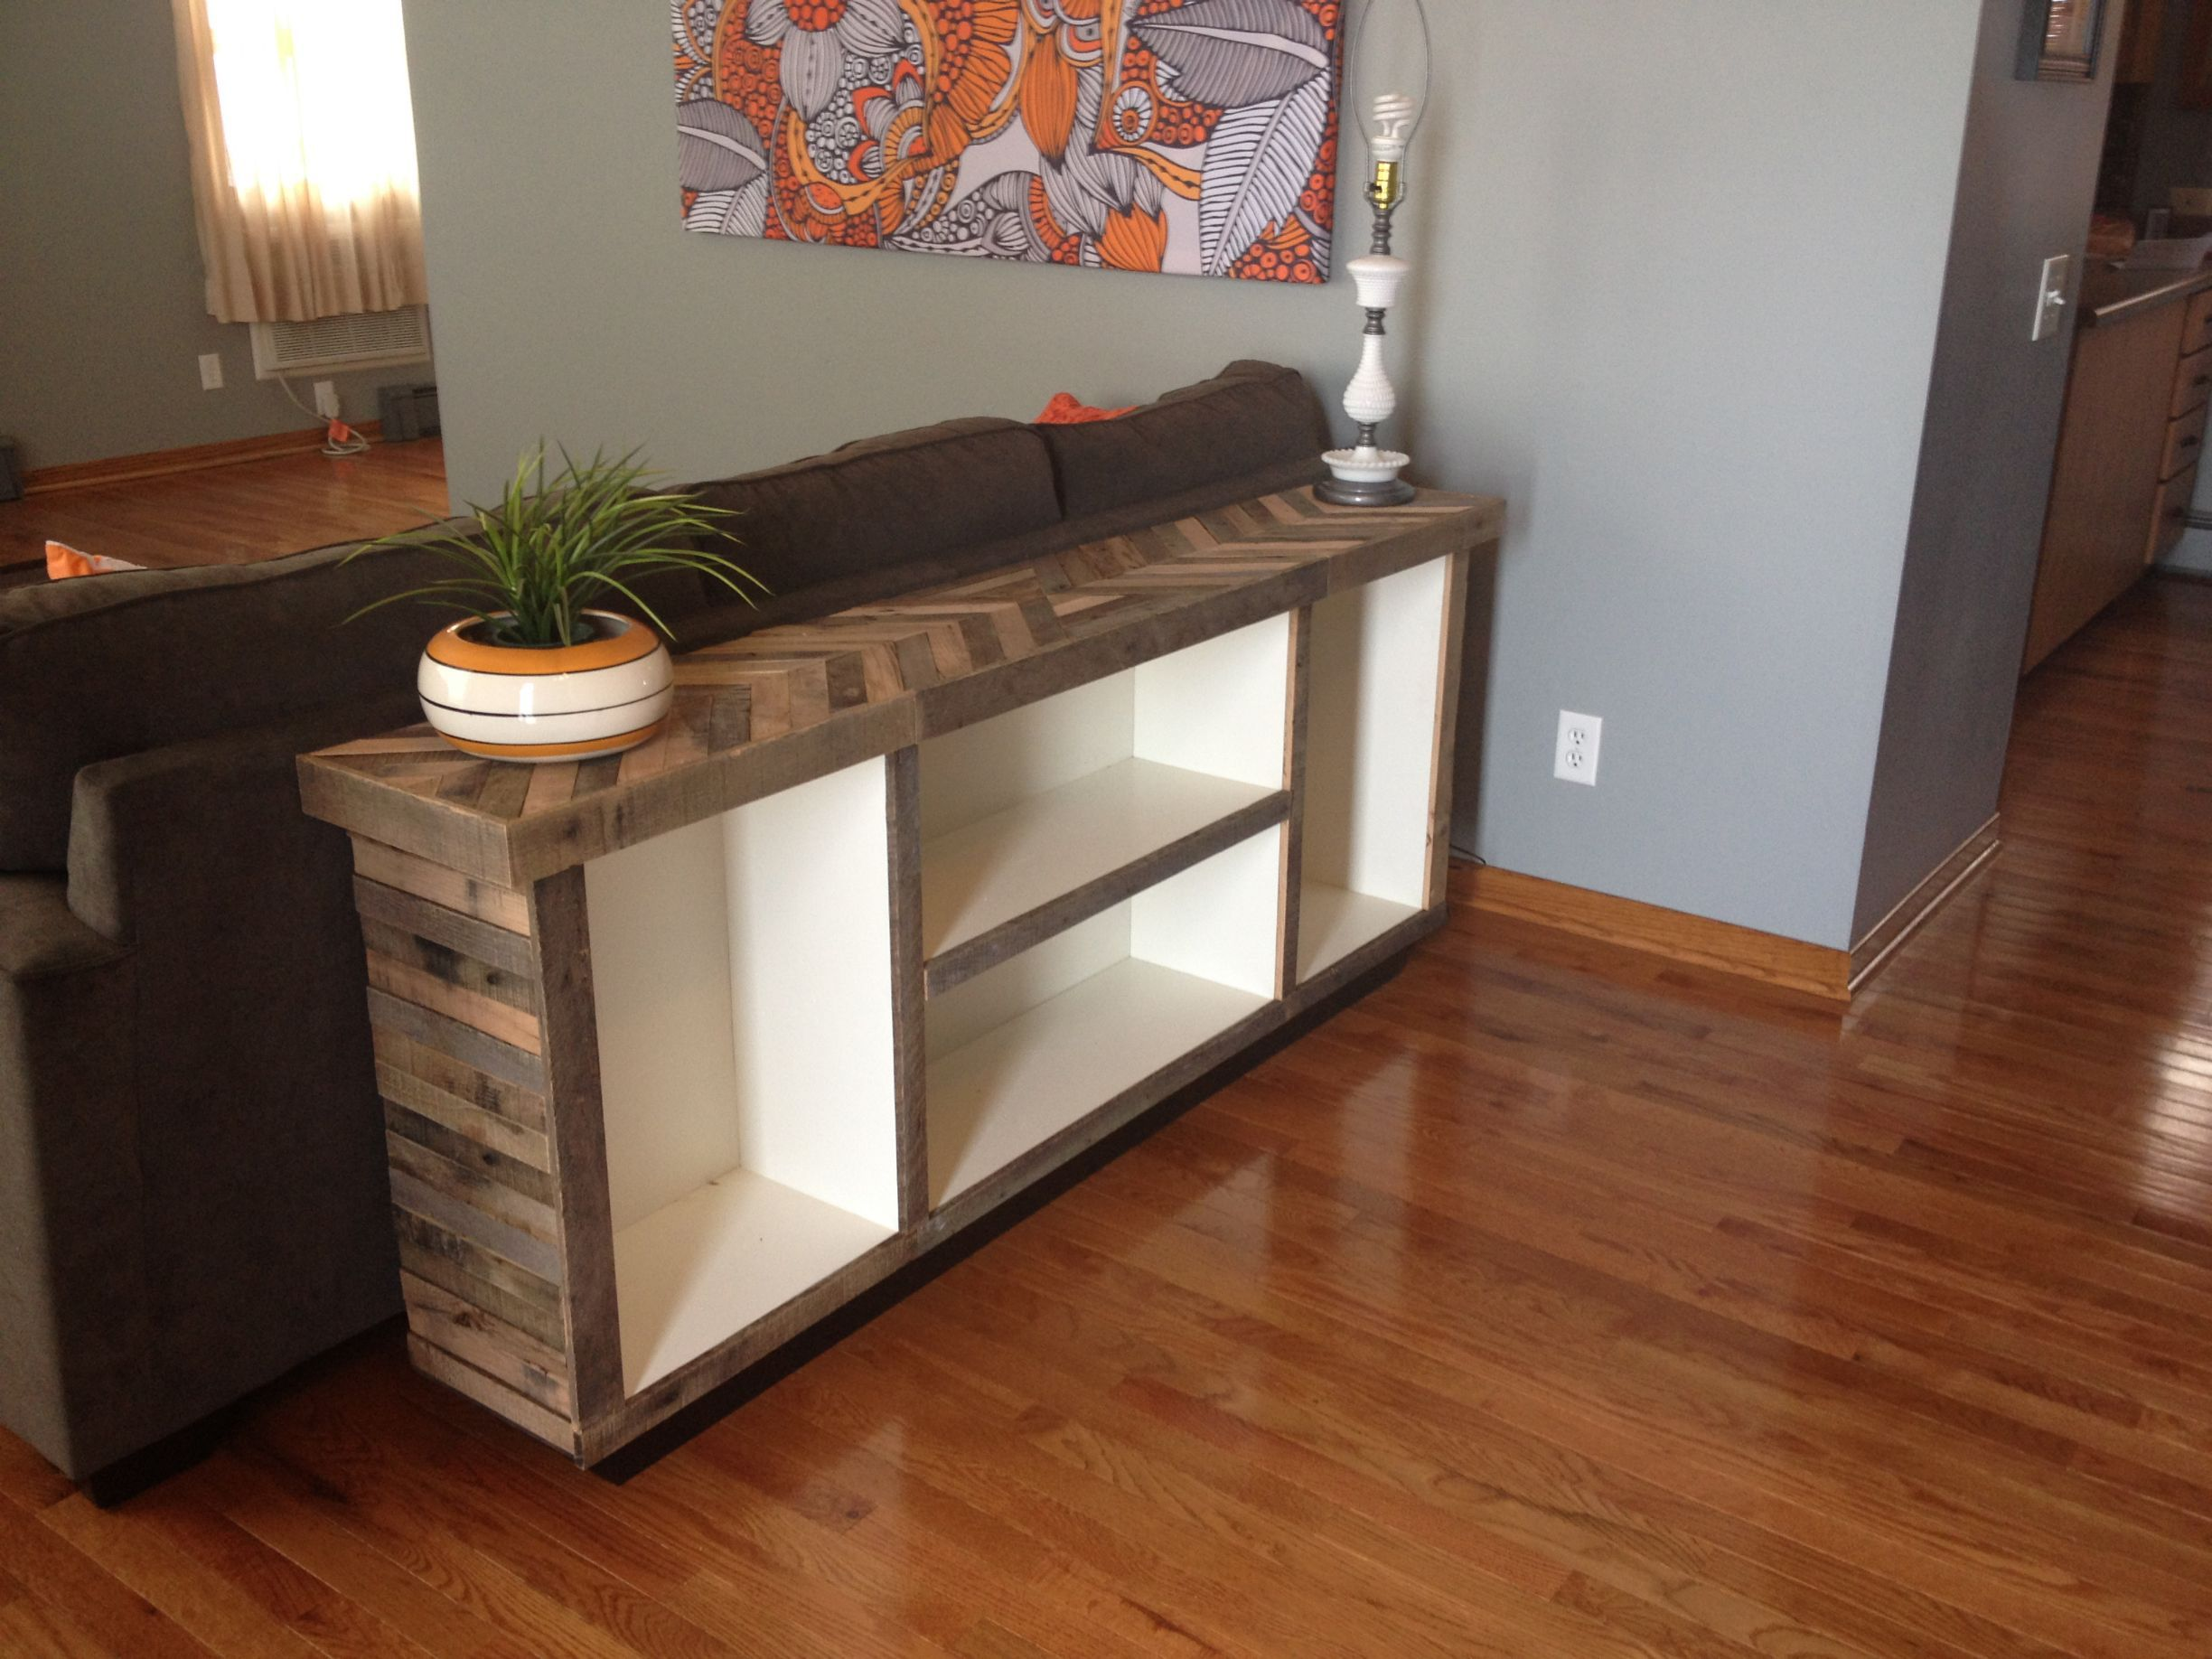 diy pallet sofa table instructions cheap slipcover sets 12 clever ways to repurpose wooden pallets building with